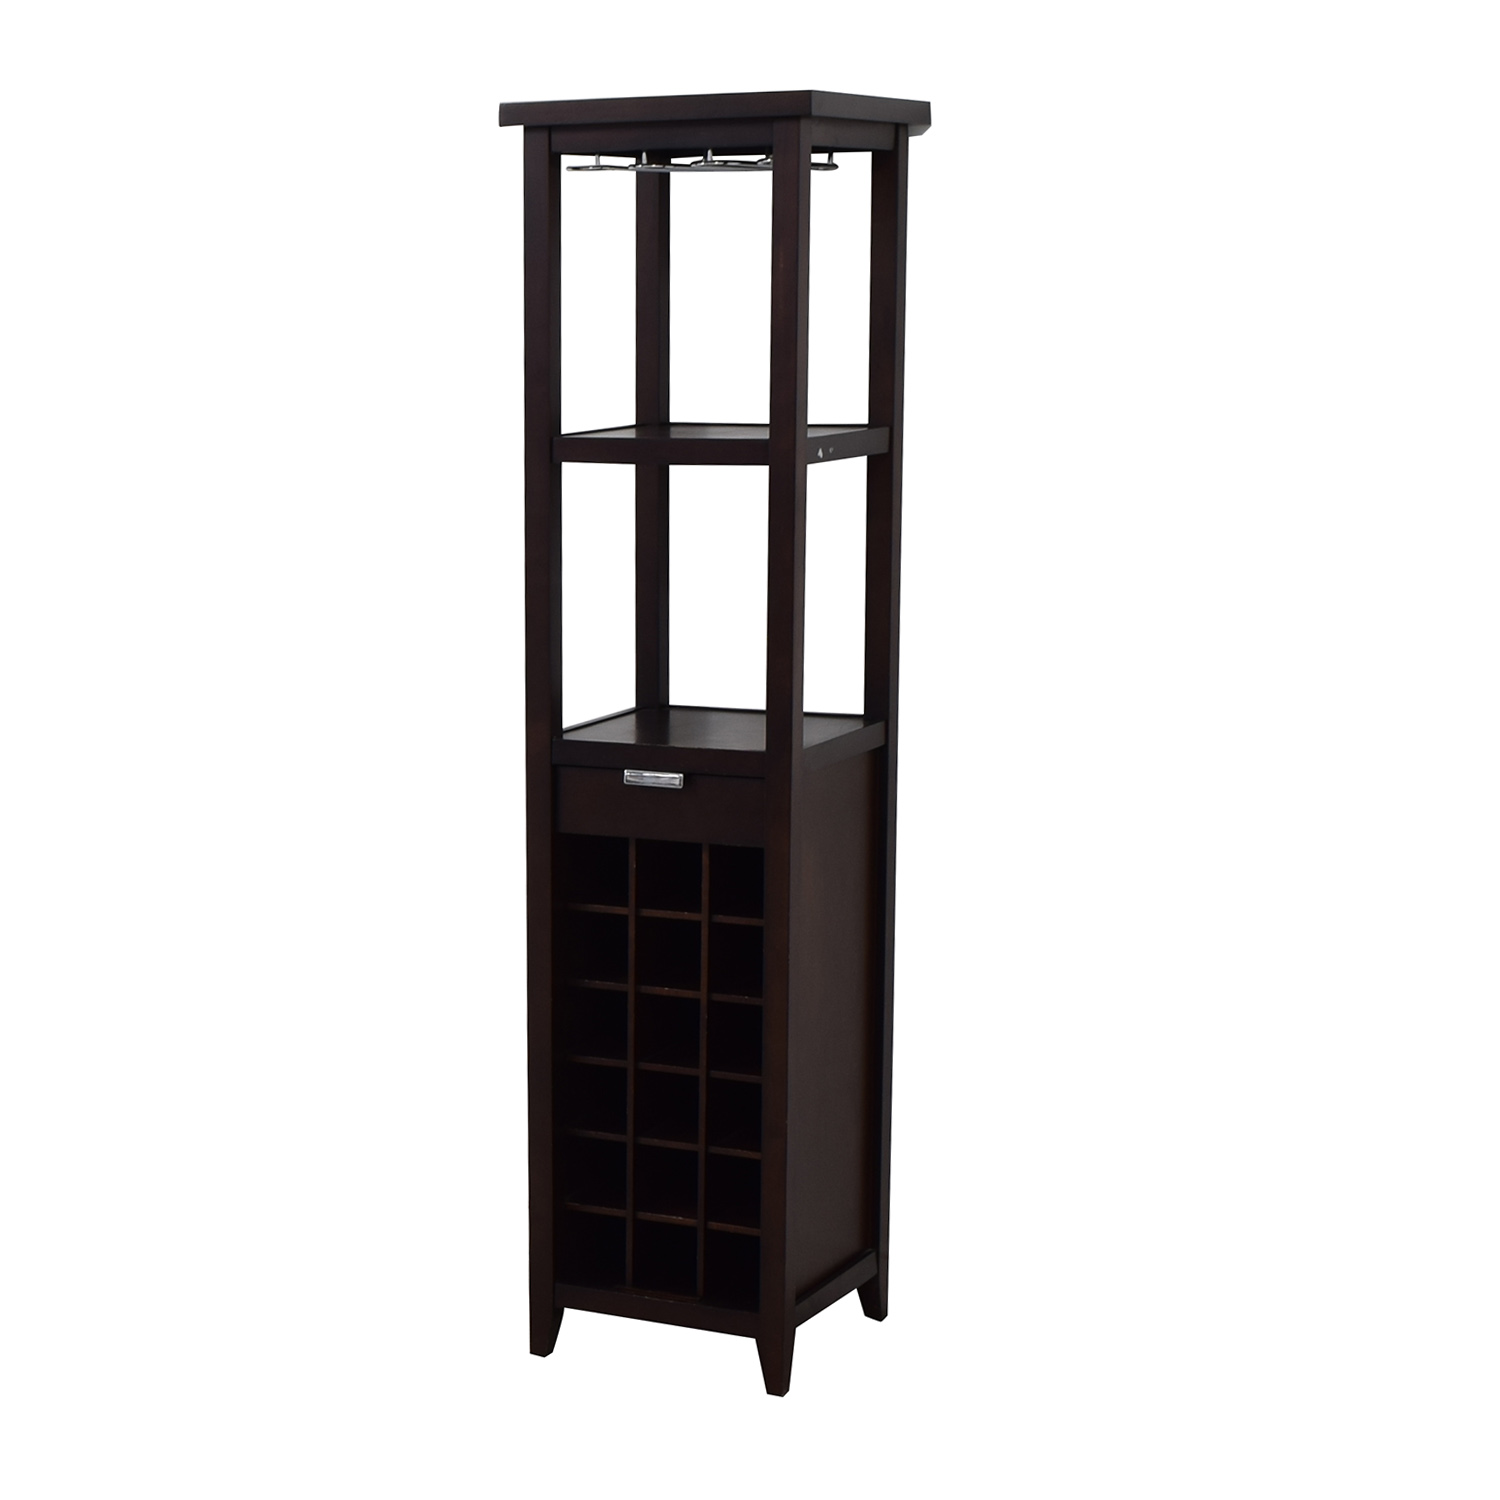 Crate & Barrel Slim Wine Tower / Cabinets & Sideboards